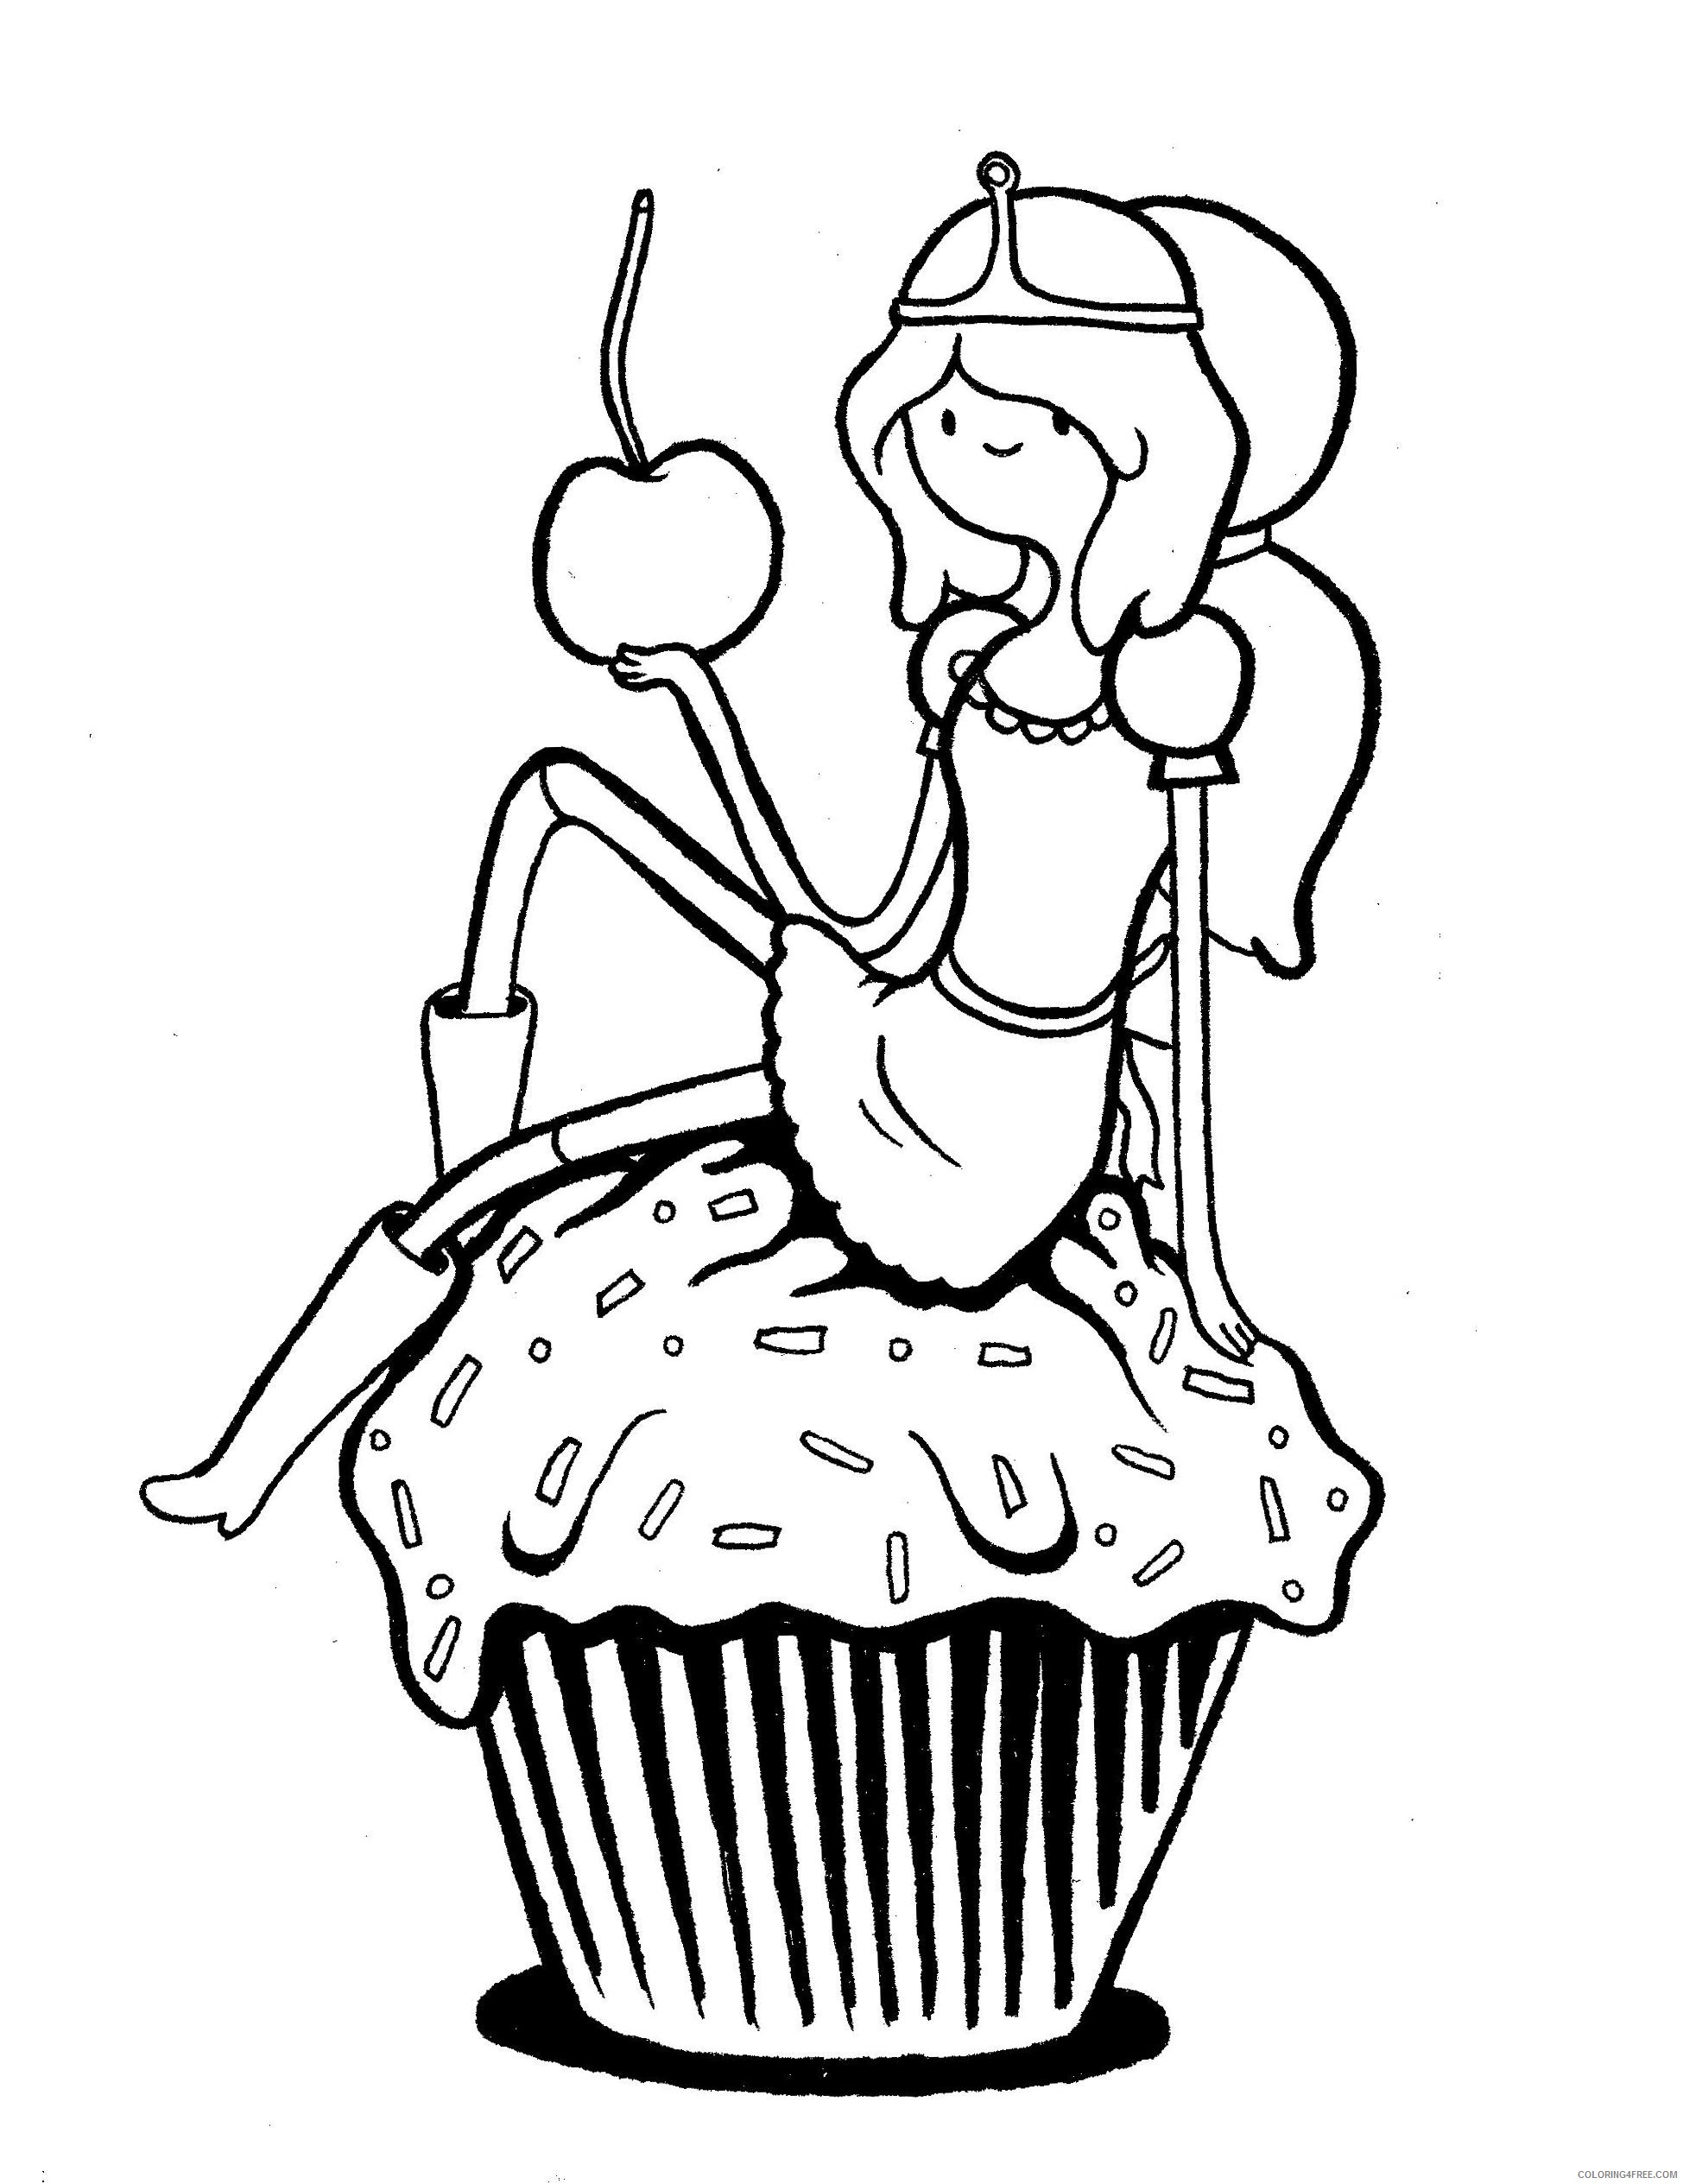 adventure time coloring pages princess bubblegum on cupcake Coloring4free